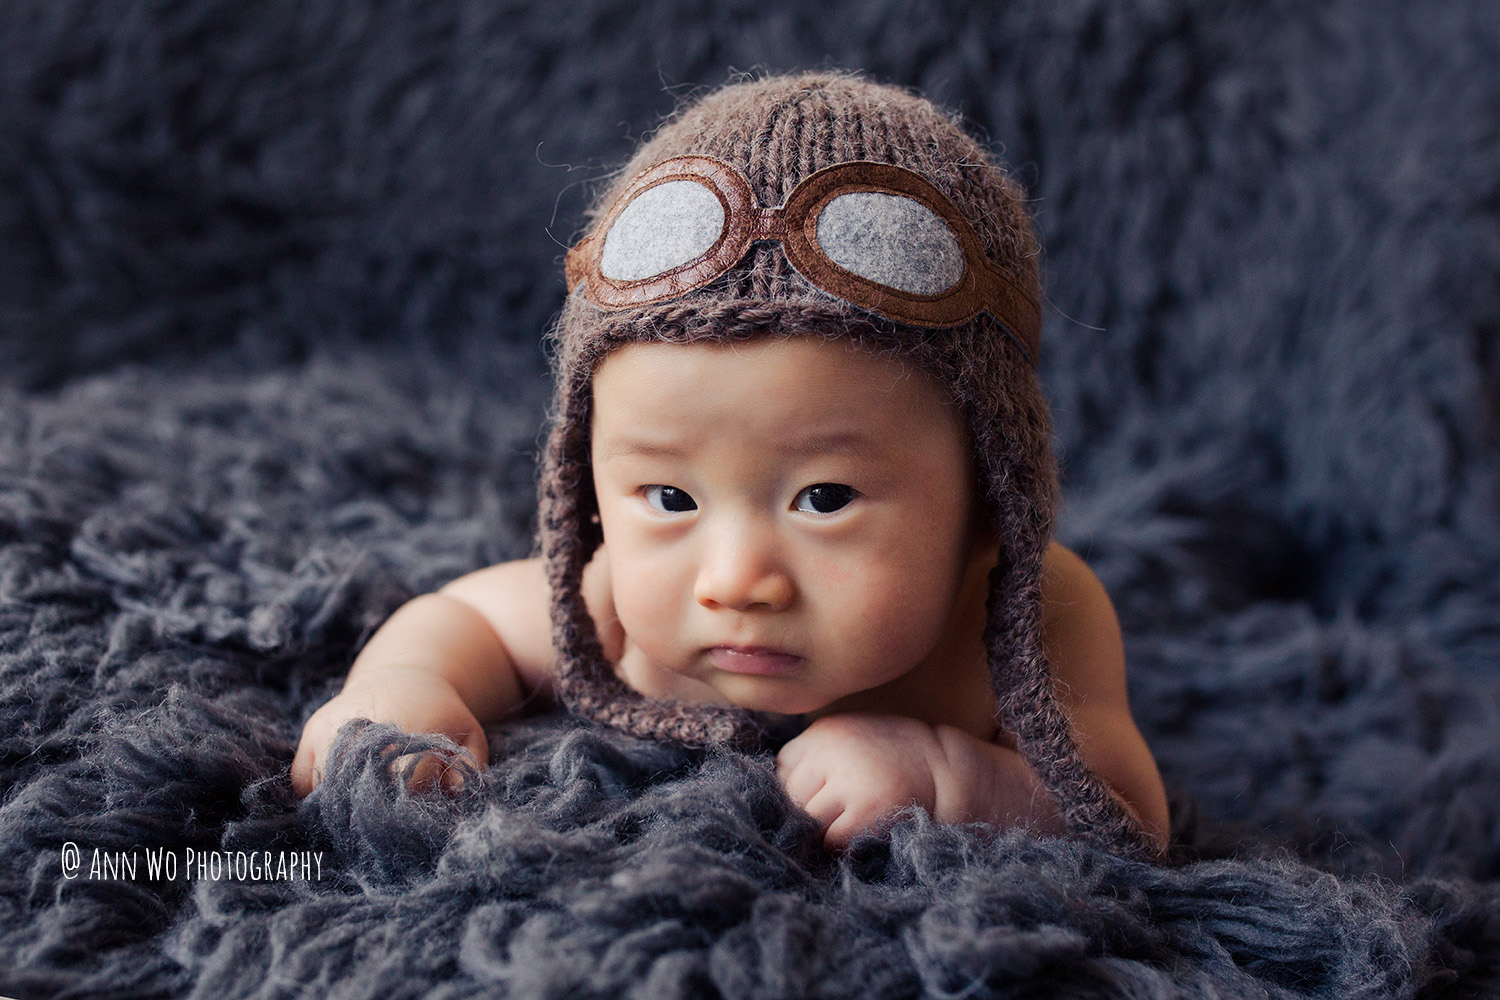 baby-photography-annwo-london-21.JPG